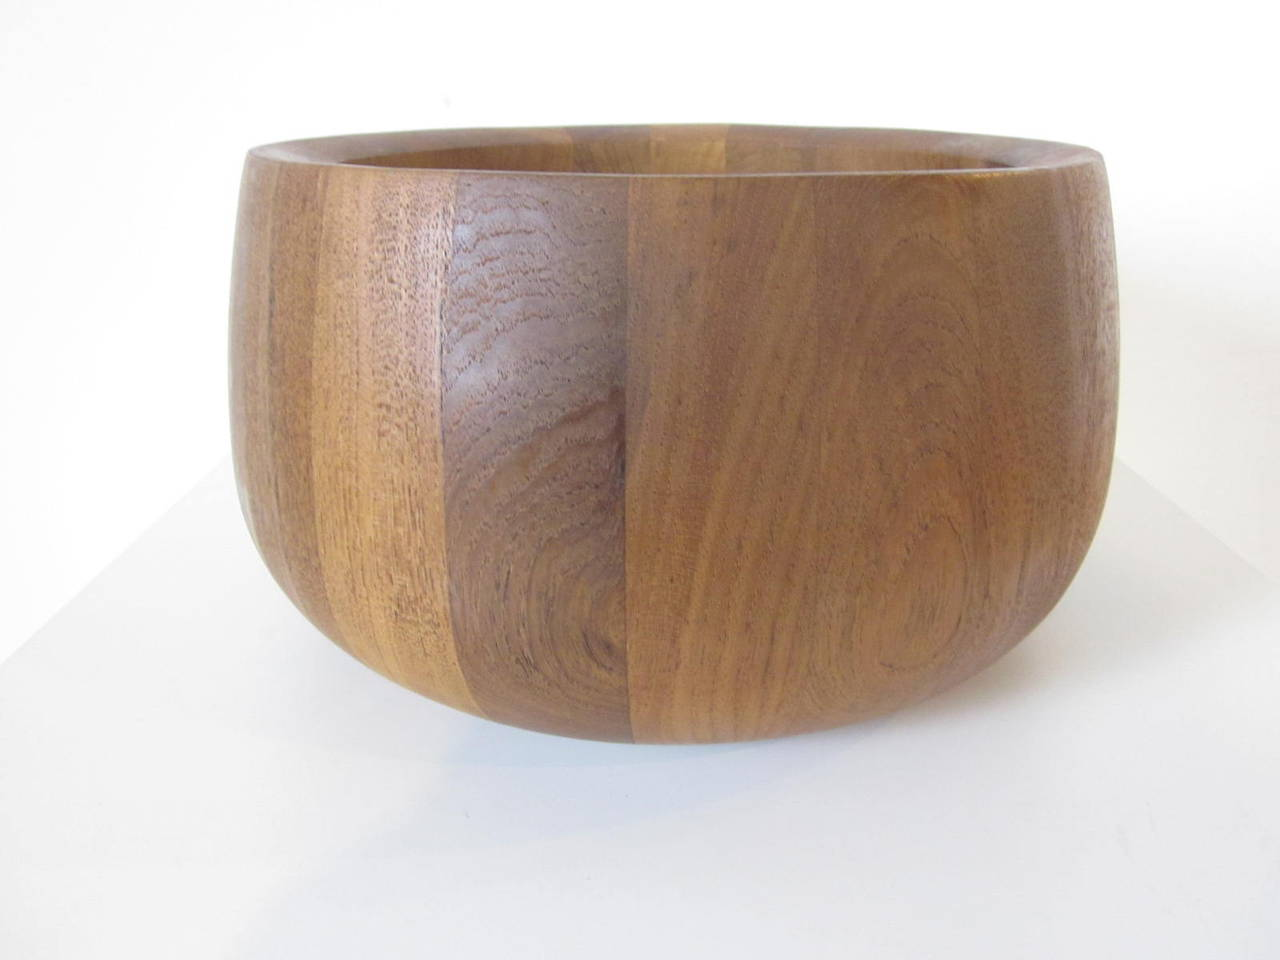 A teakwood salad bowl made by Dansk and designed by Jens Quistgaard great for a center piece or making that yummy salad .